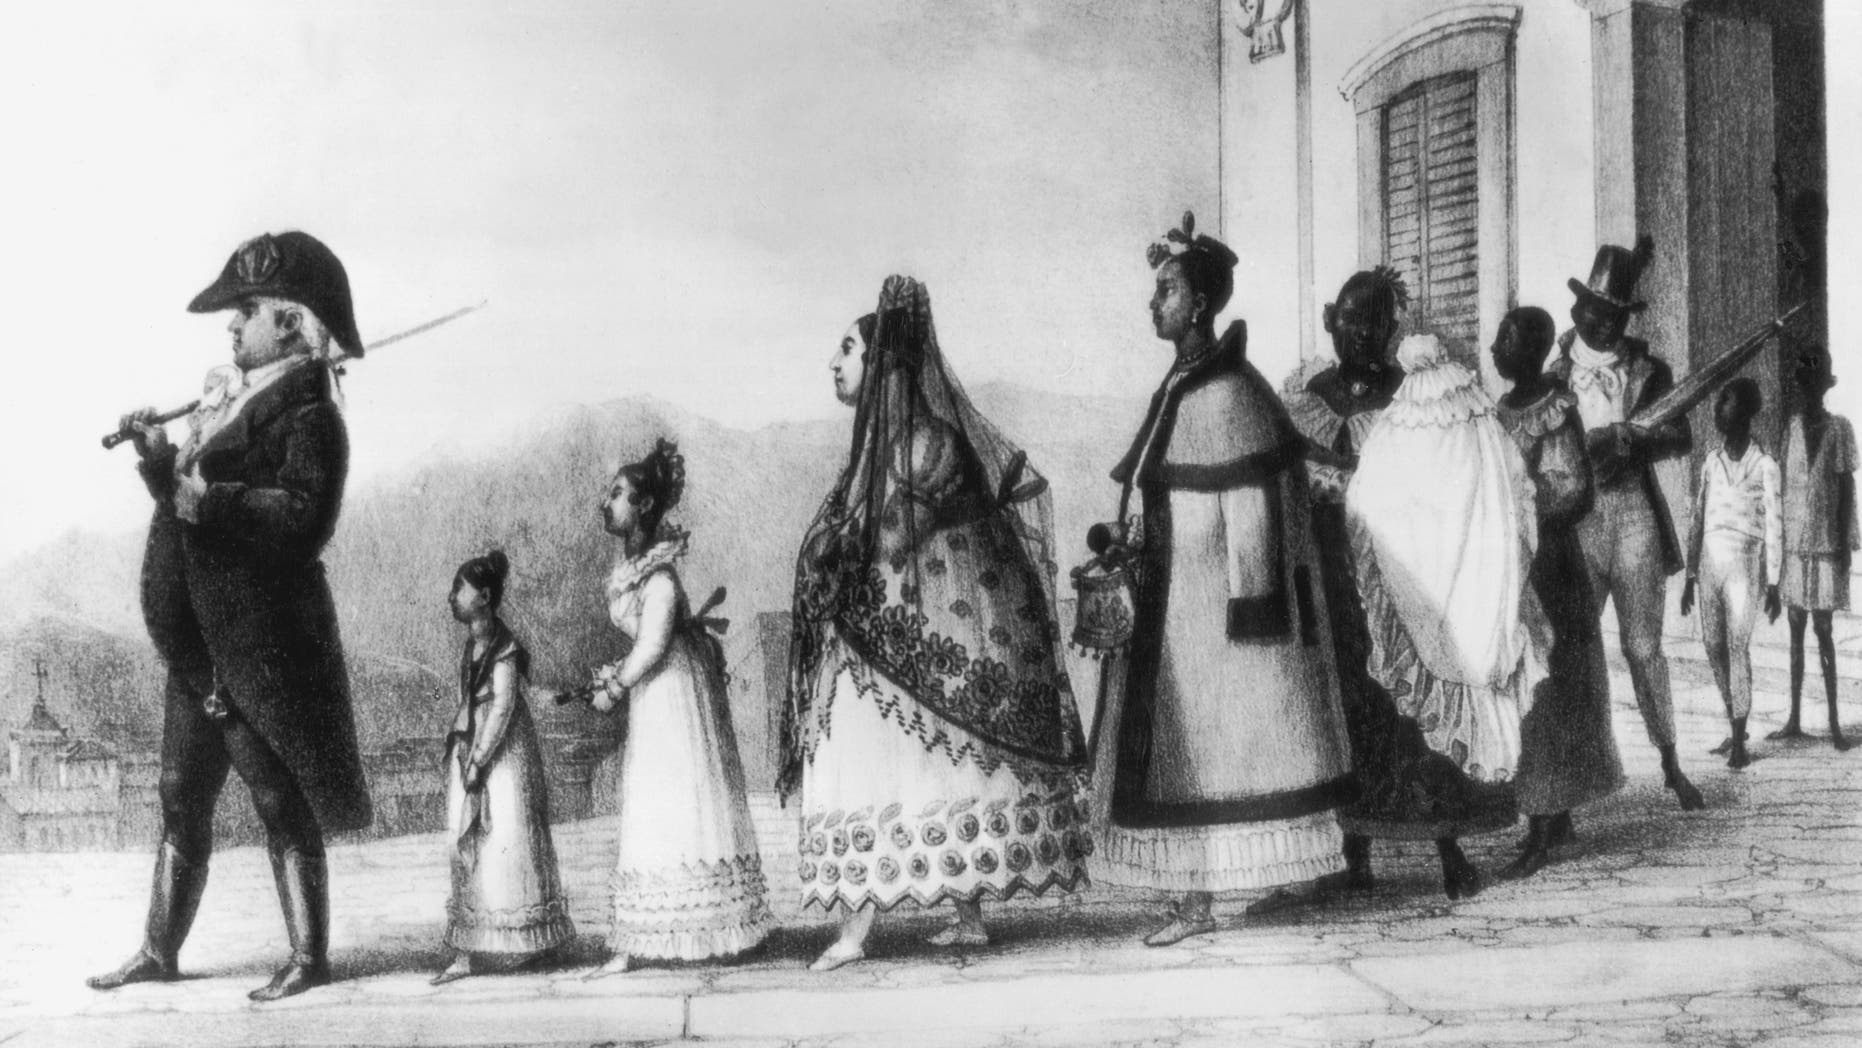 Portuguese settlers in Brazil, circa 1820. A civil servant takes his family for a stroll in Rio de Janeiro. From 'Voyage Pittoresque et Historique au Bresil' by Jean-Baptiste Debret. (Photo by Hulton Archive/Getty Images)